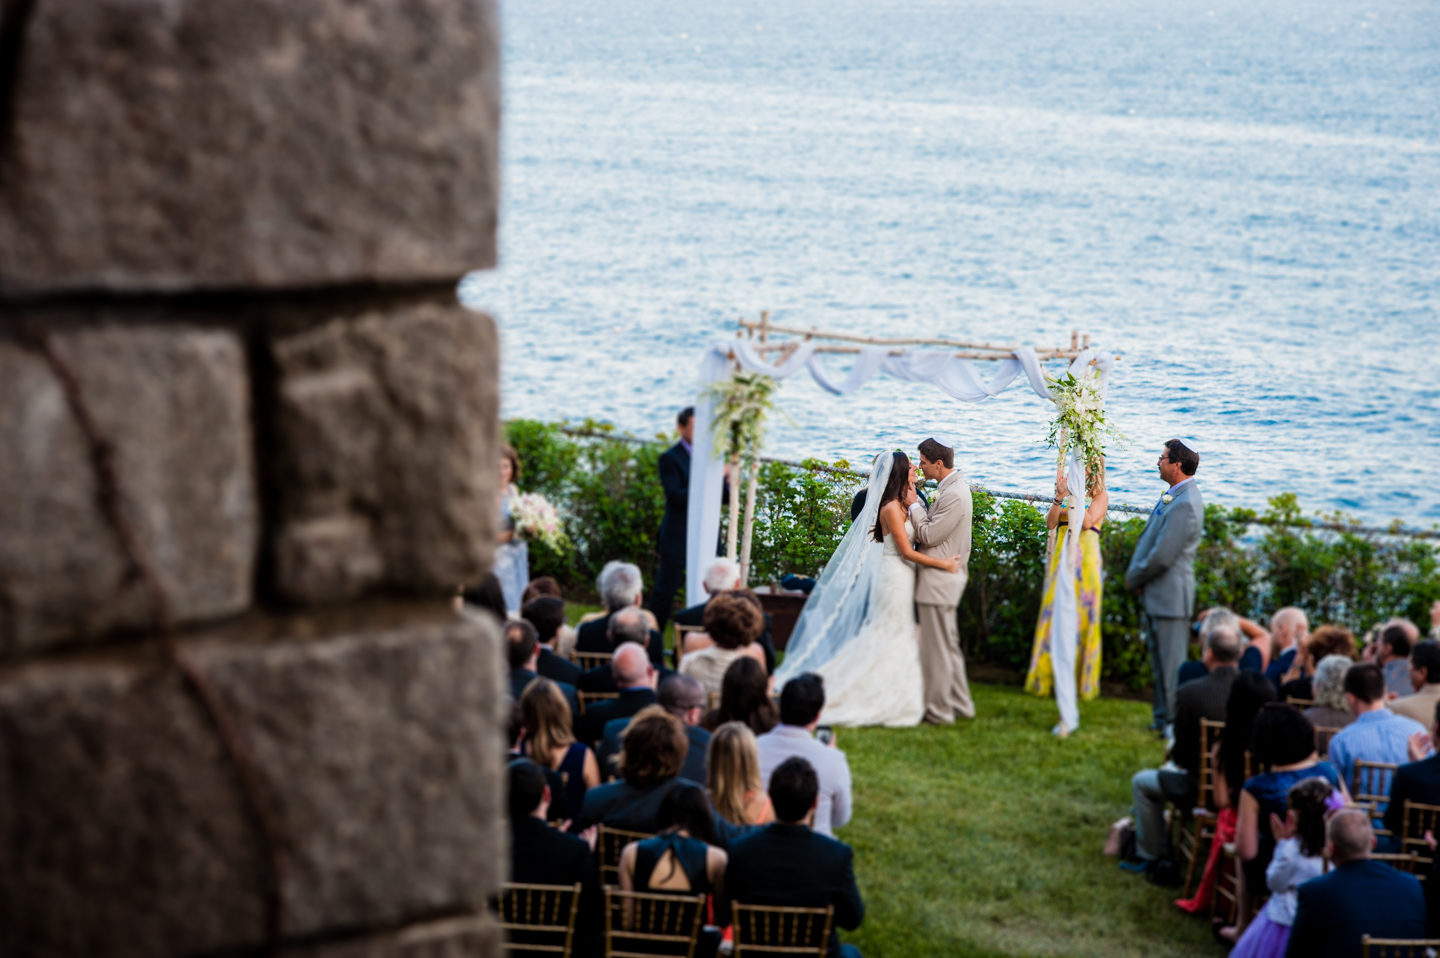 bride and grooms first kiss as husband and wife after their seaside wedding ceremony